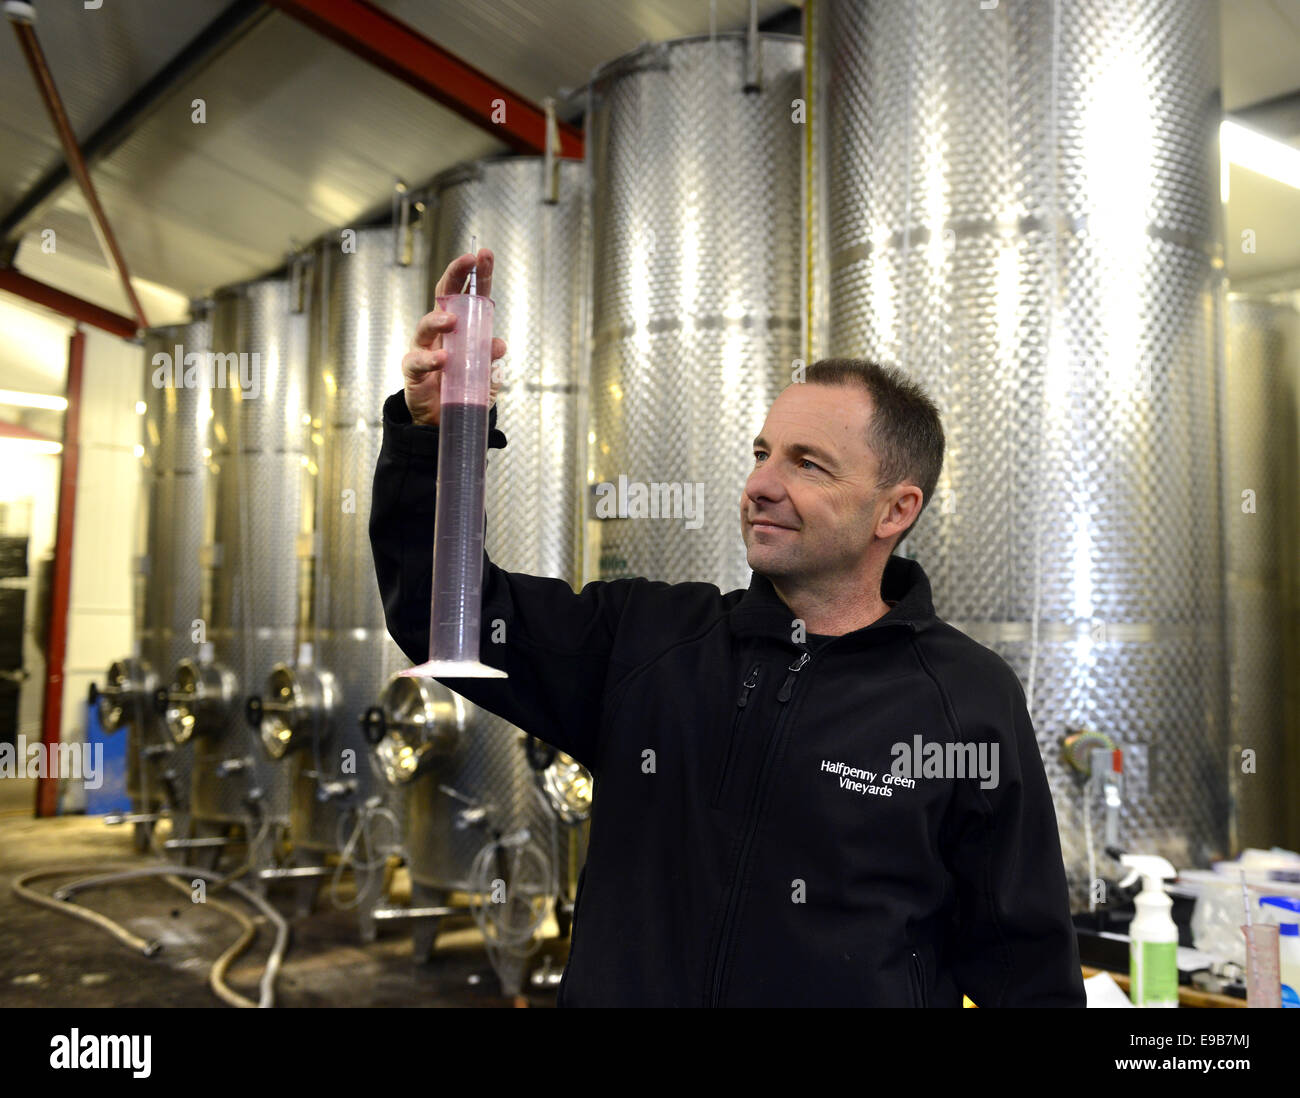 Clive Vickers director at Halfpenny Green Vineyards testing wine gravity with hydrometer in Staffordshire England - Stock Image